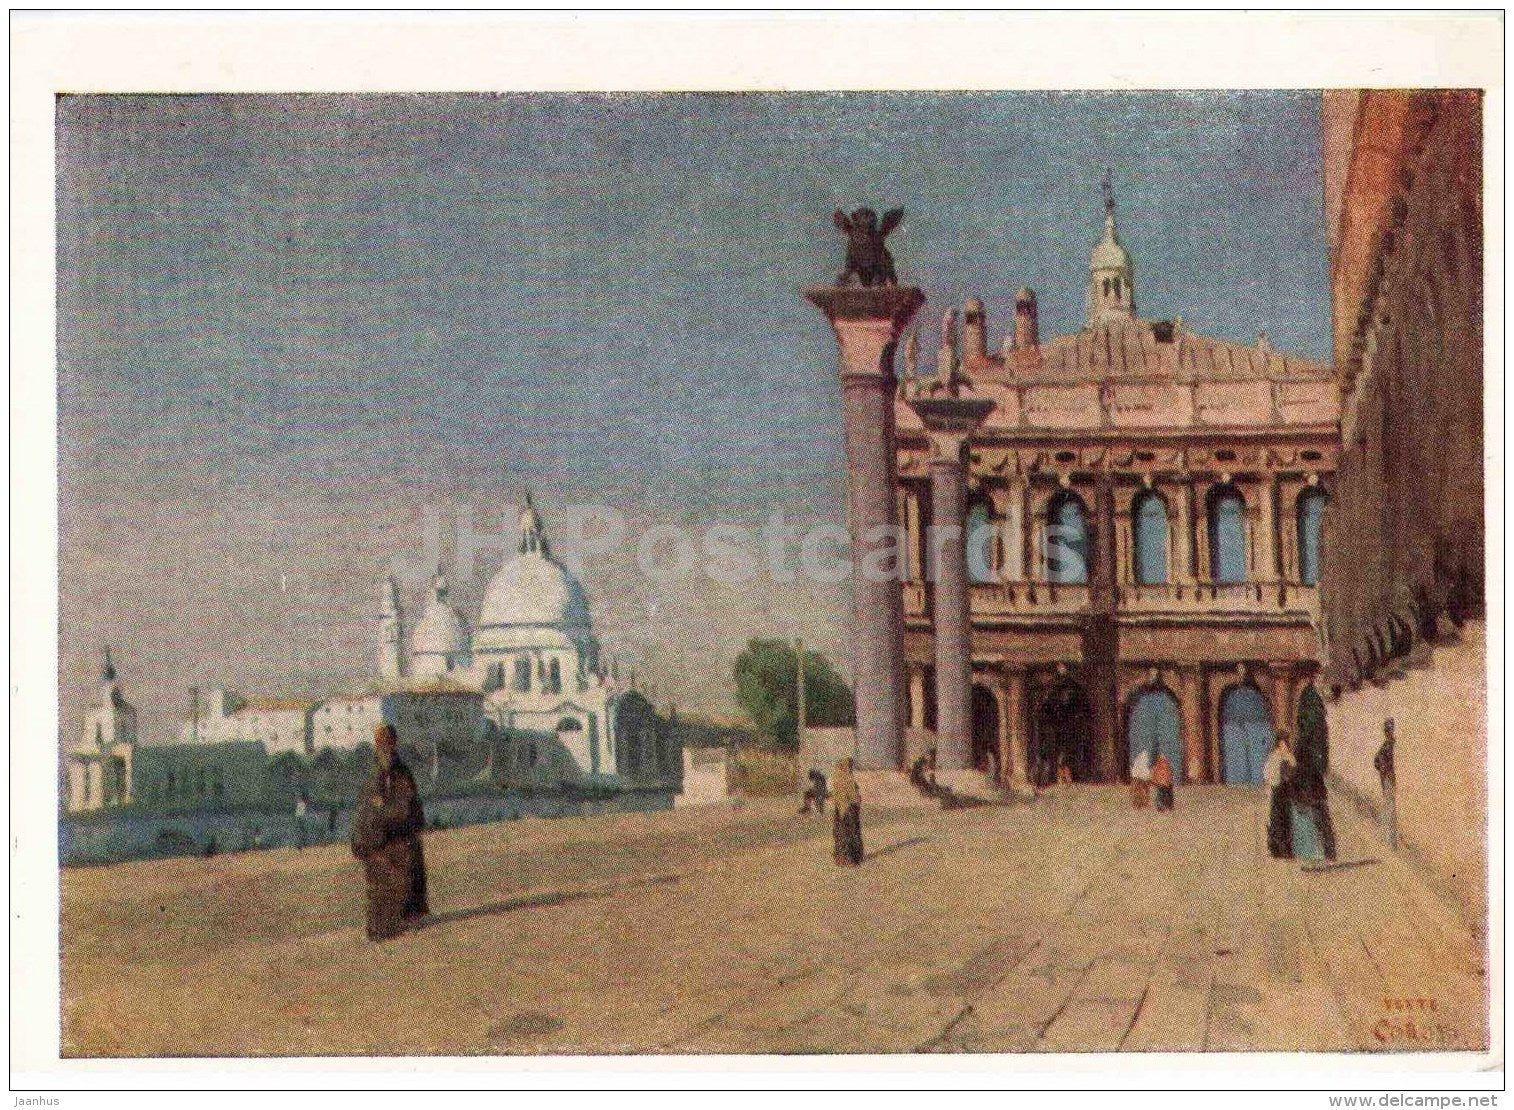 painting by Jean-Baptiste-Camille Corot - Morning in the Venice - Venezia - French art - 1957 - Russia USSR - unused - JH Postcards